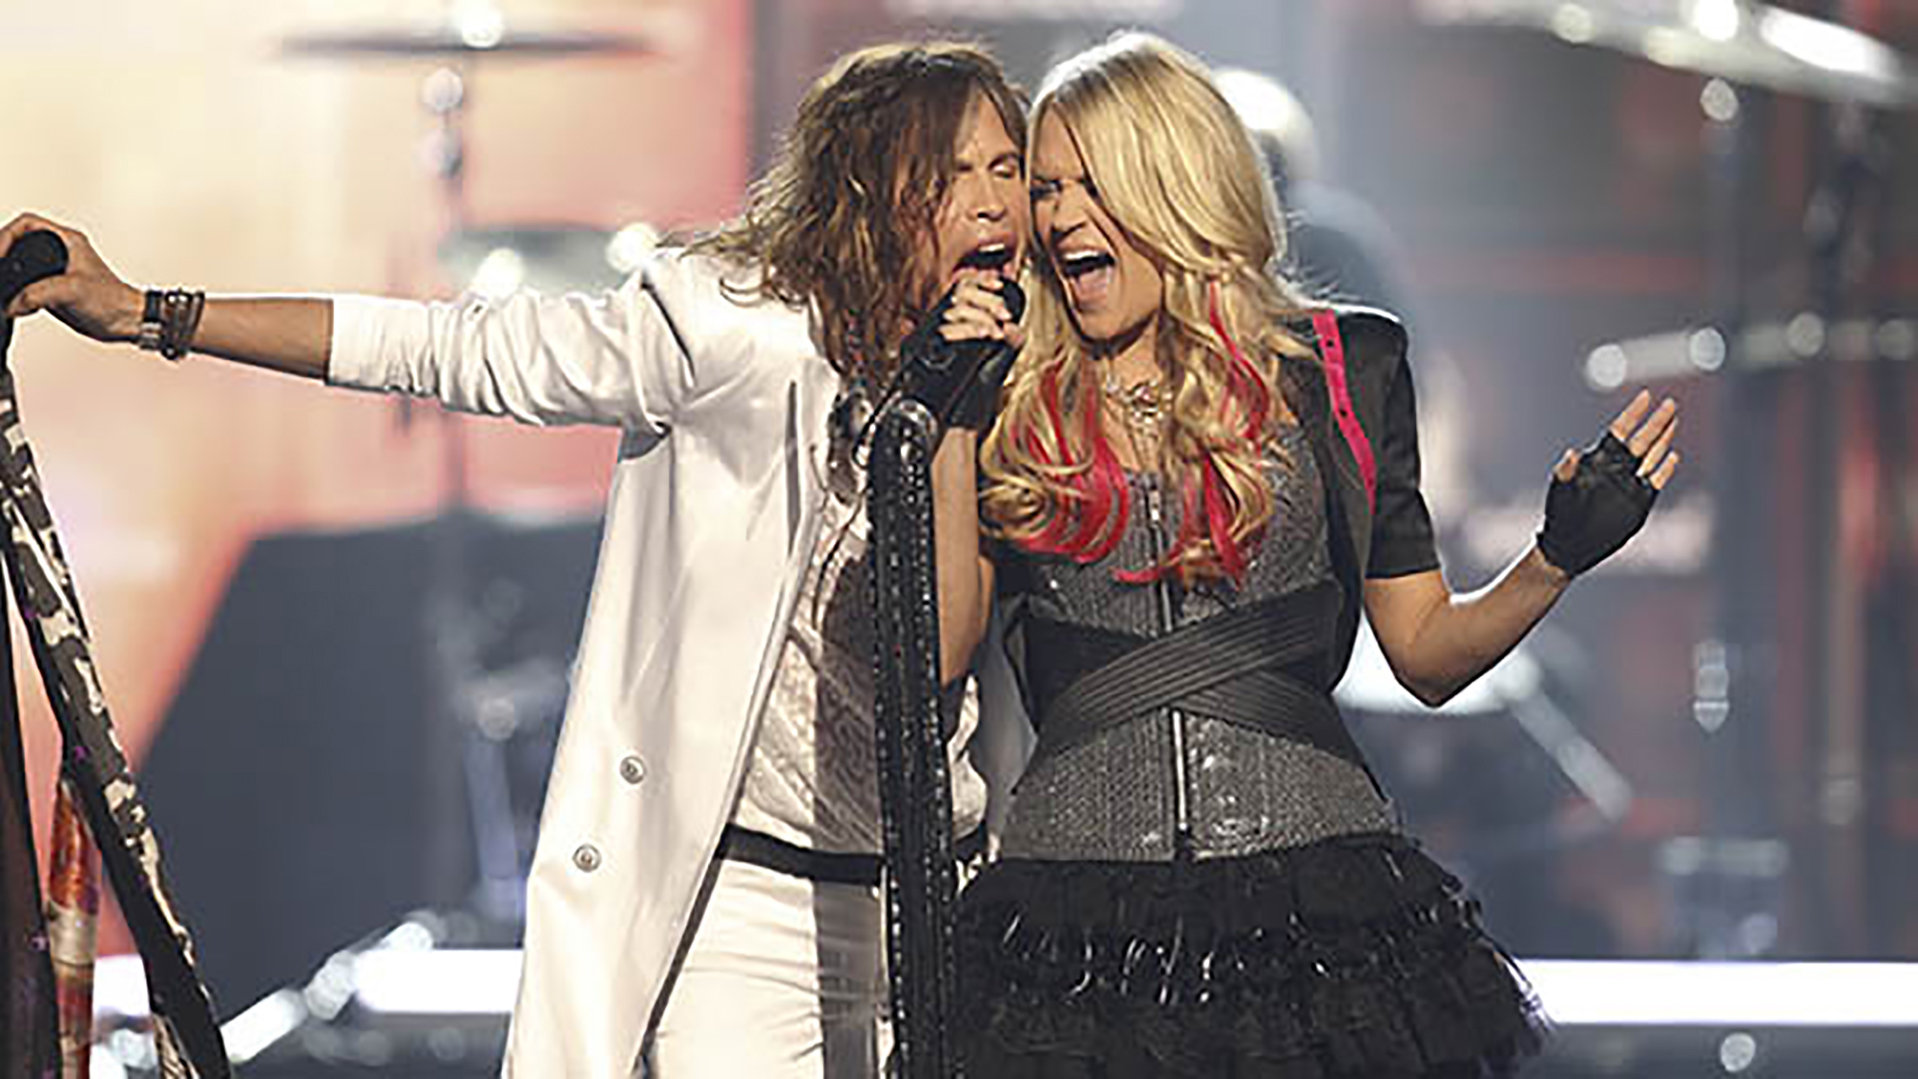 7. Carrie Underwood and Steven Tyler perform